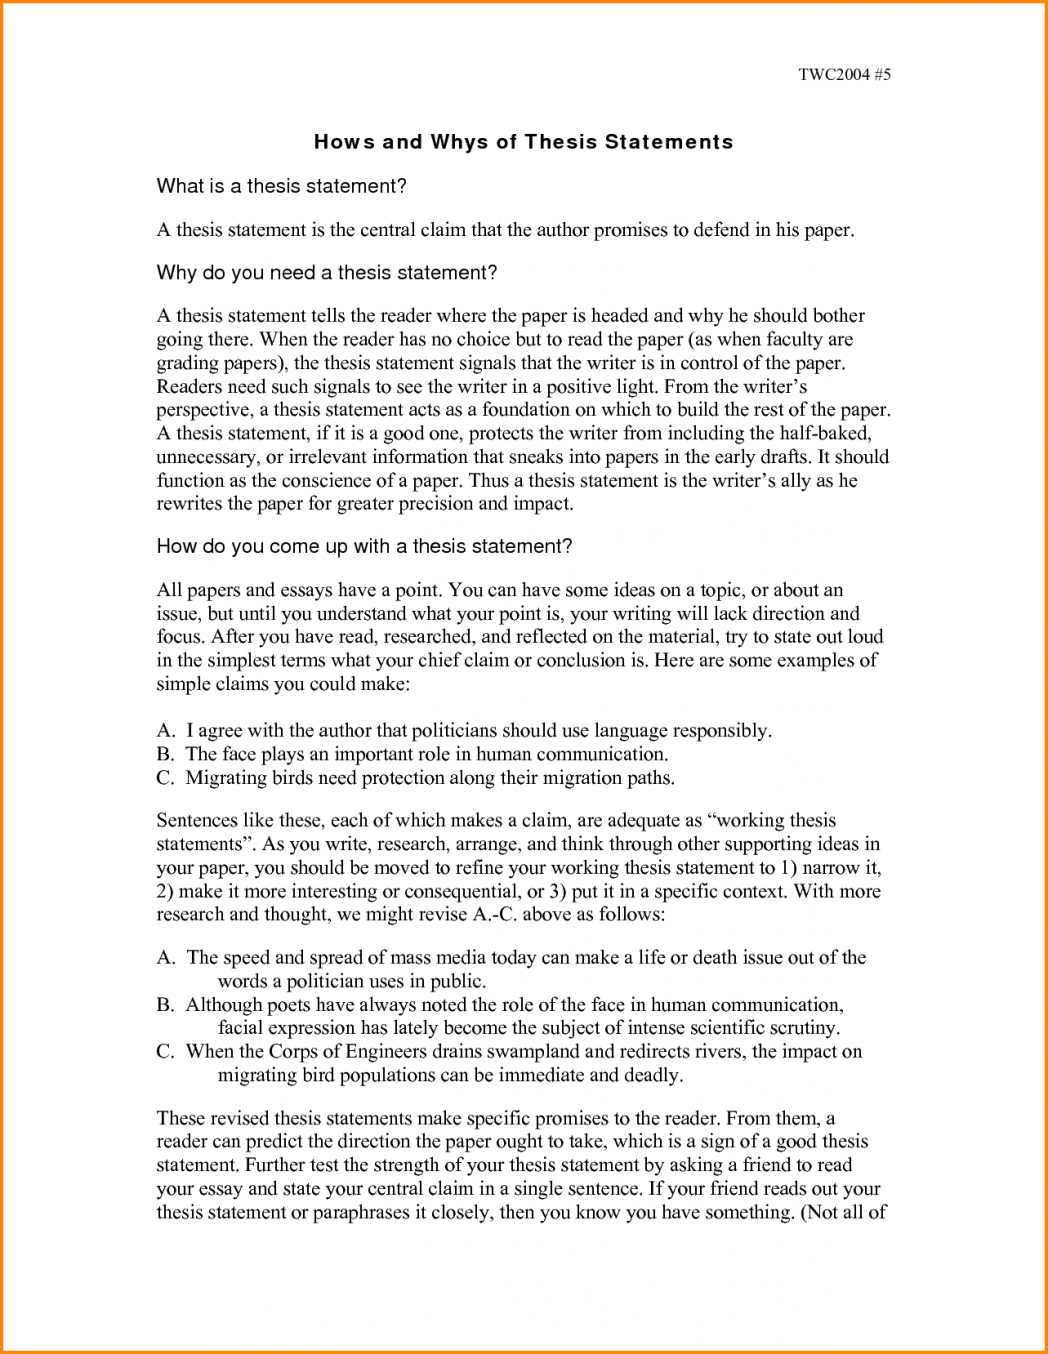 027 The Descriptive Essay Essays Aboutson Profile How To Write Sample Thesis Statement Examples For You Admire Writing An Describing In Third Pdf 1048x1354 Example On Staggering A Person Start Famous Full